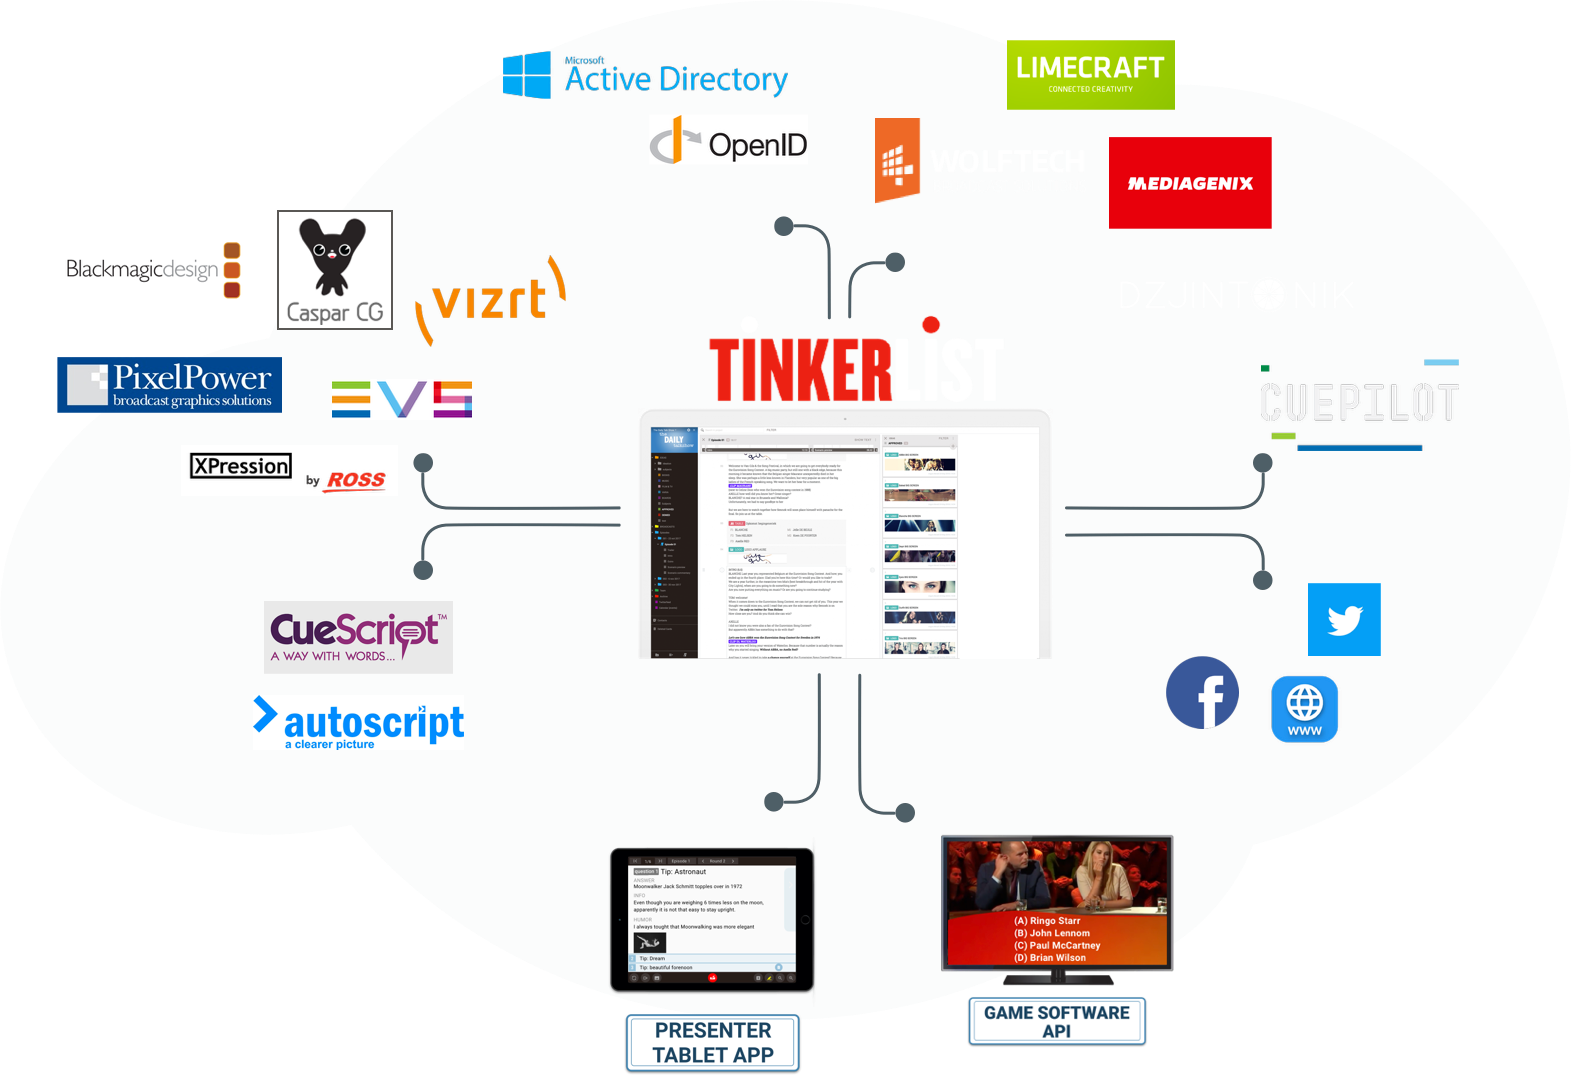 TinkerList - Create superior television content, together, faster!